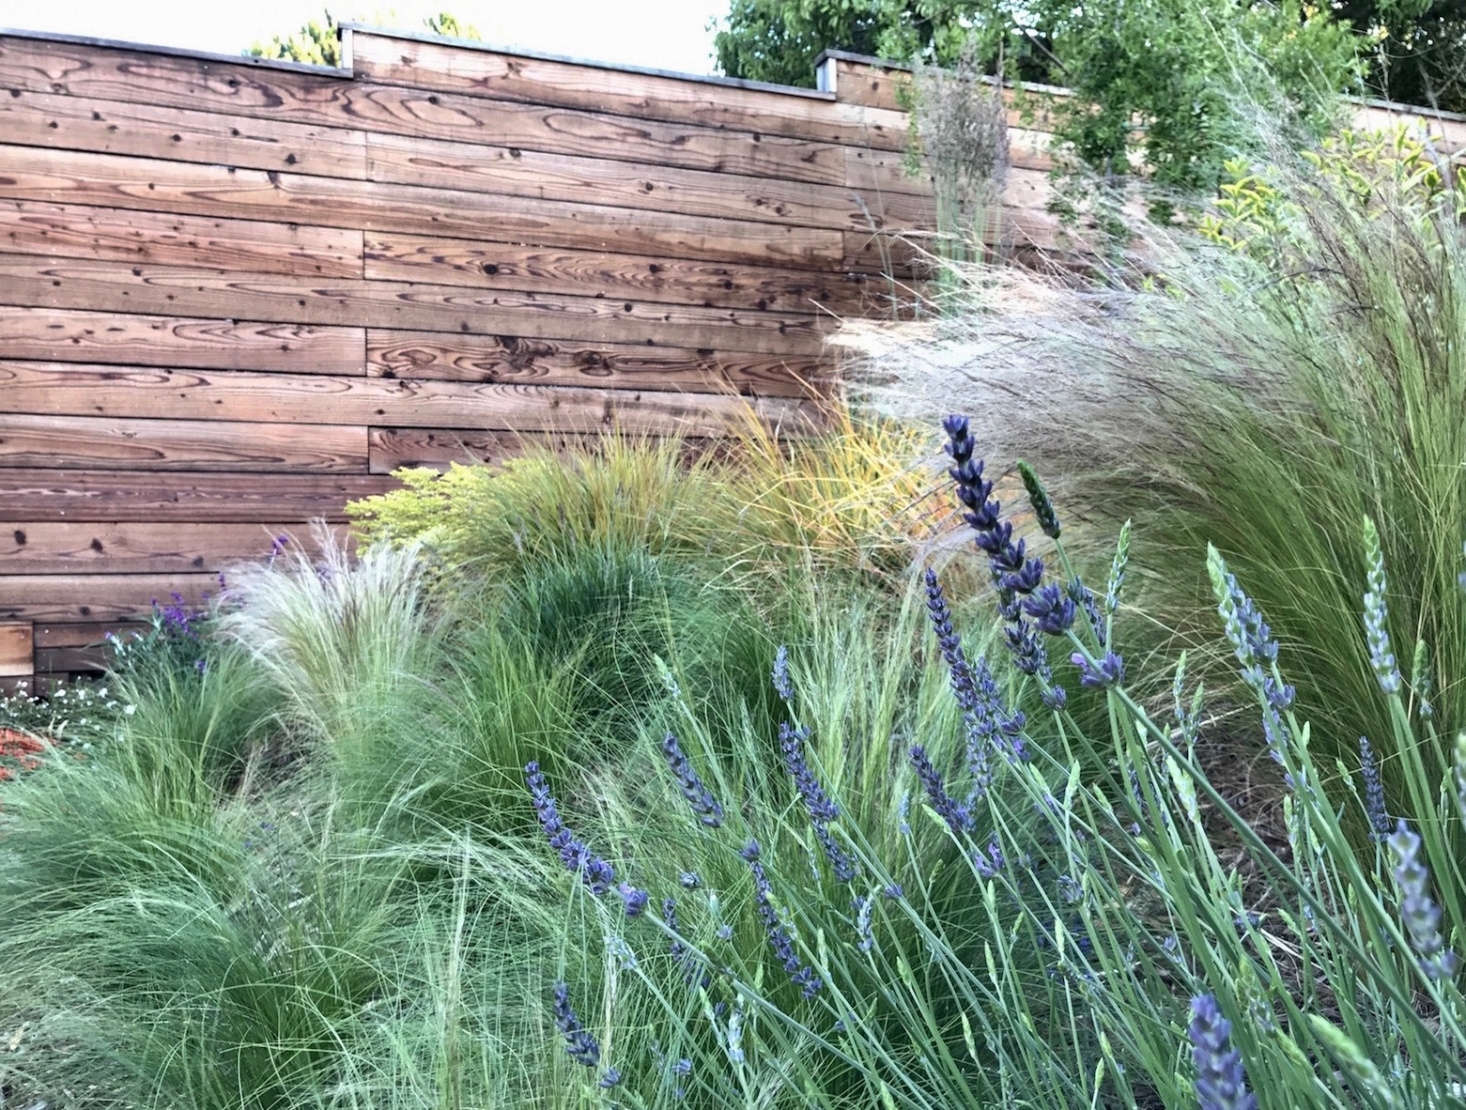 Mix-and-match perennial grasses get along well on a slope; shown here are Mexican feather grass (Stipa), New Zealand wind grass, &#8